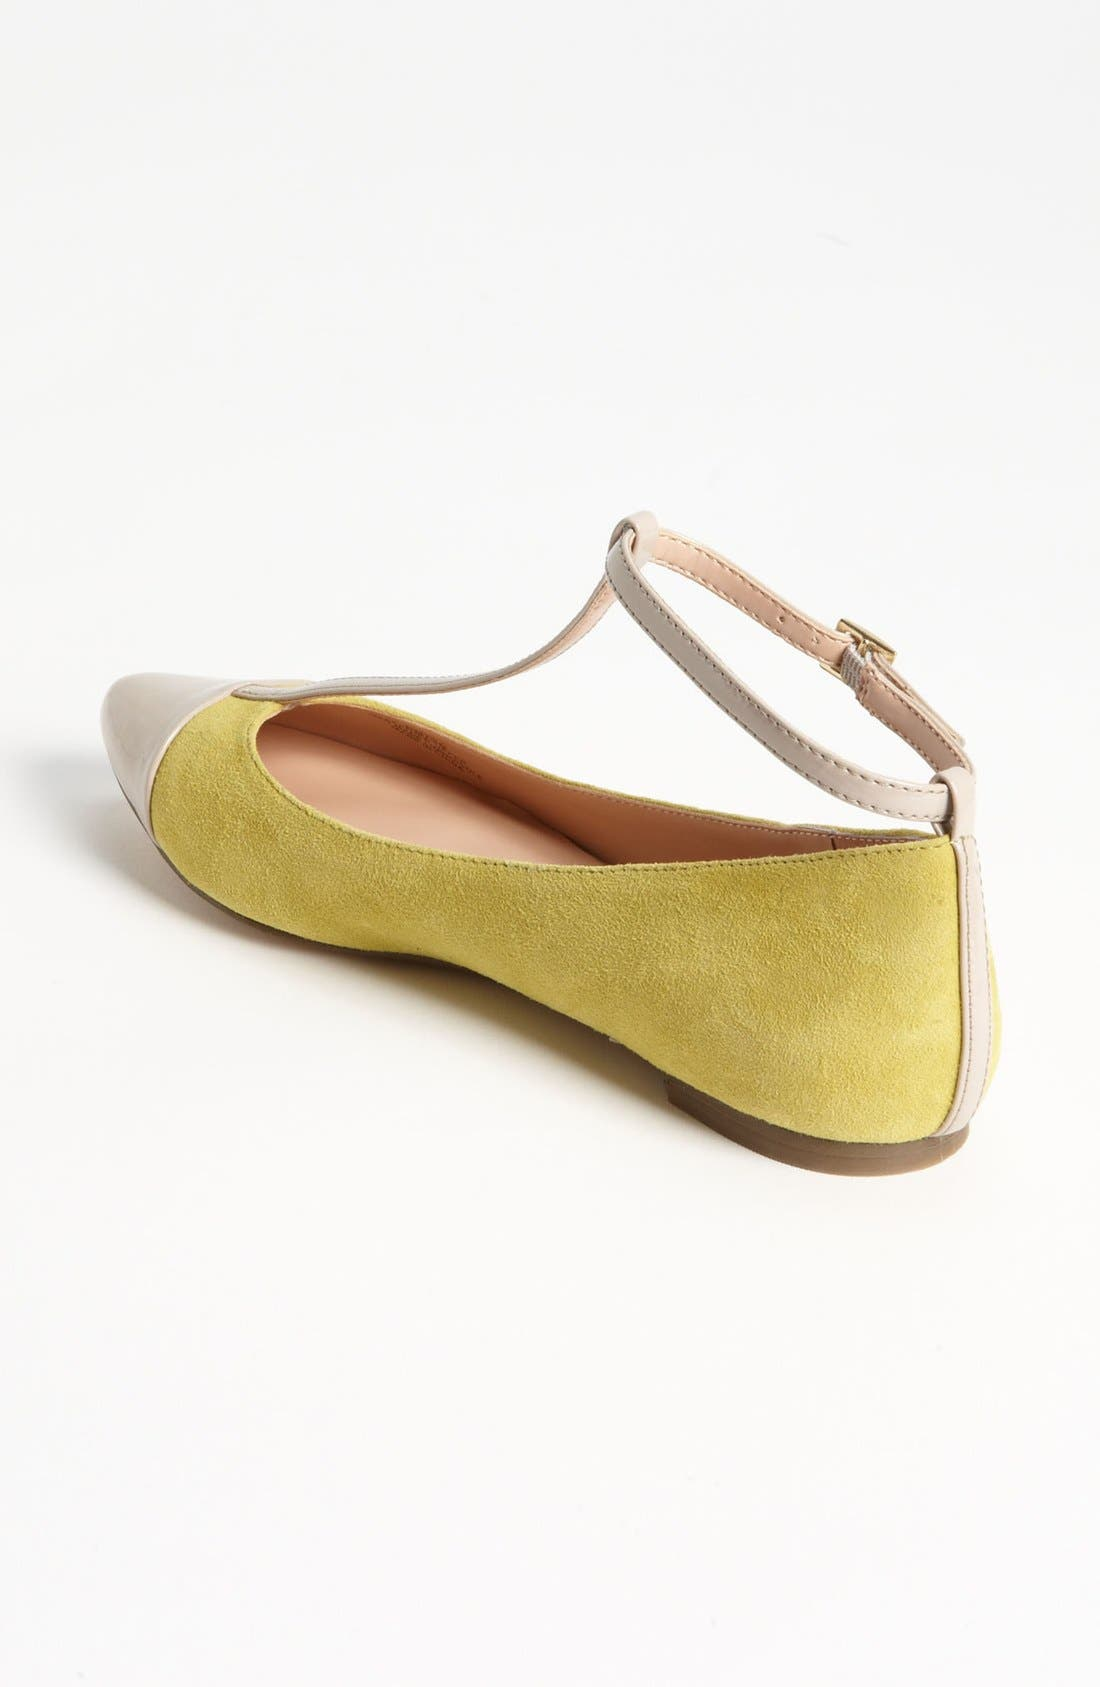 ,                             Julianne Hough for Sole Society 'Addy' Flat,                             Alternate thumbnail 35, color,                             331